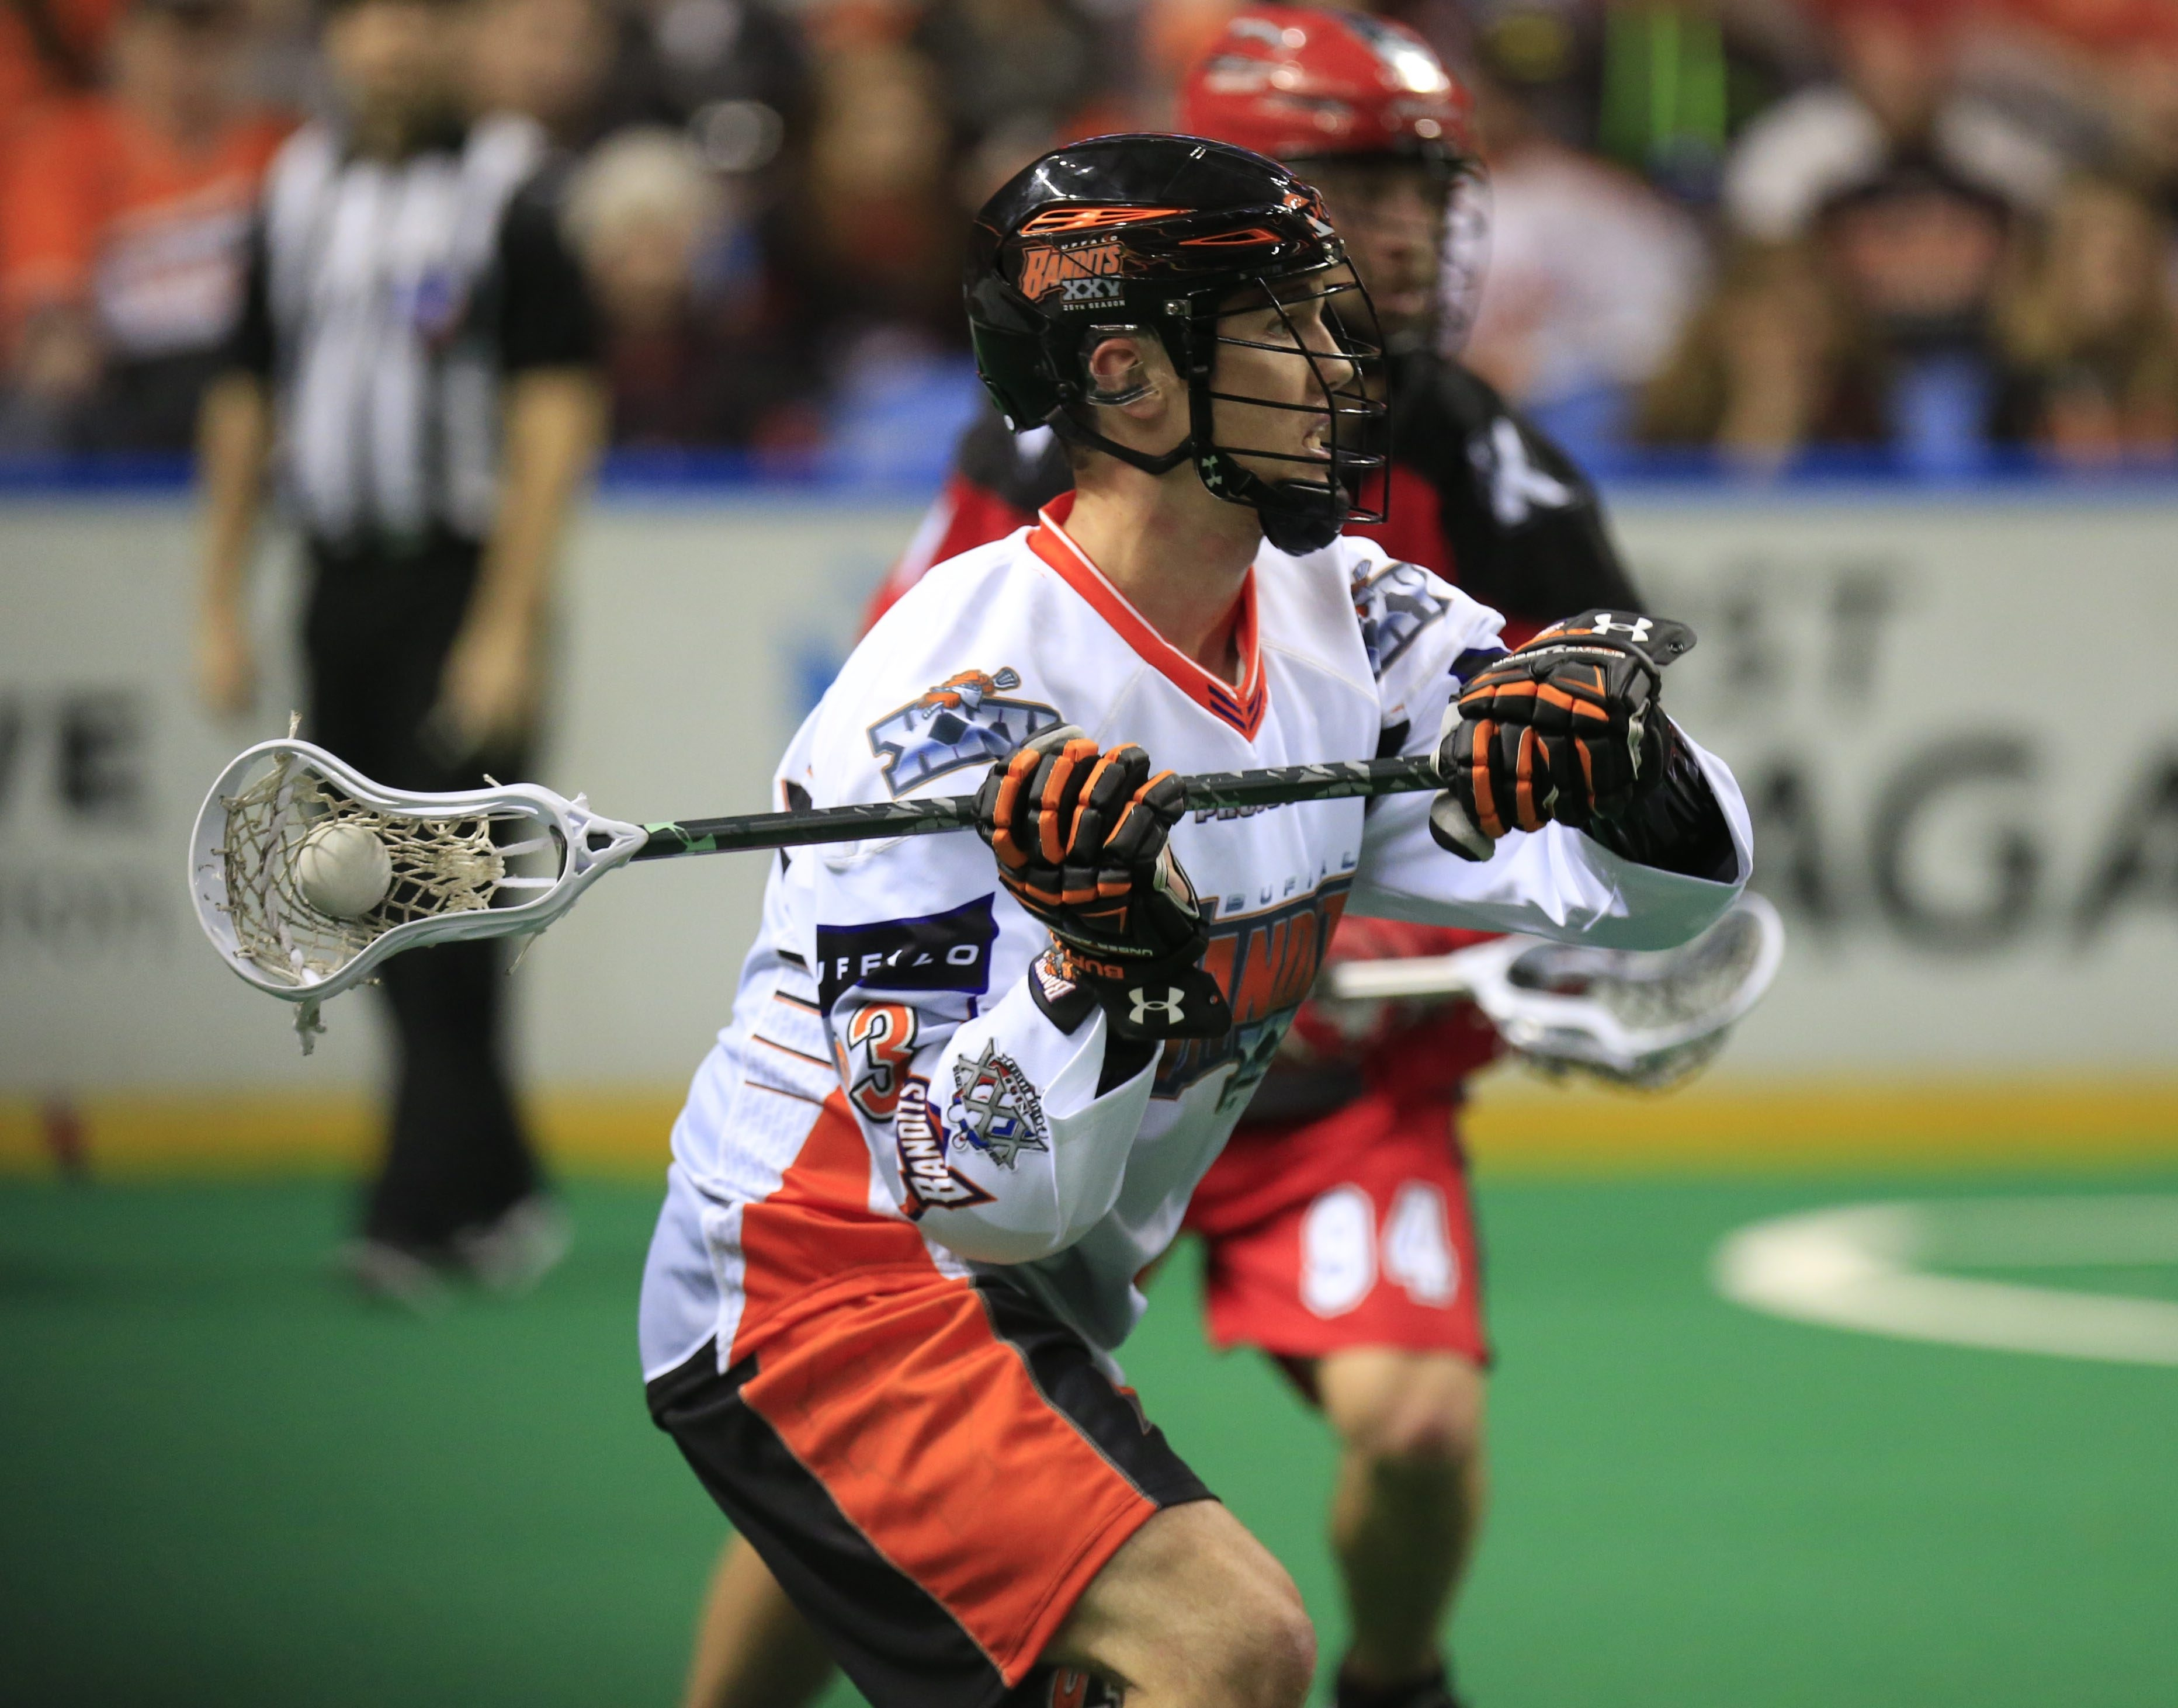 Anthony Malcom has had a difficult season with the Bandits because of injuries. (Buffalo News file photo)